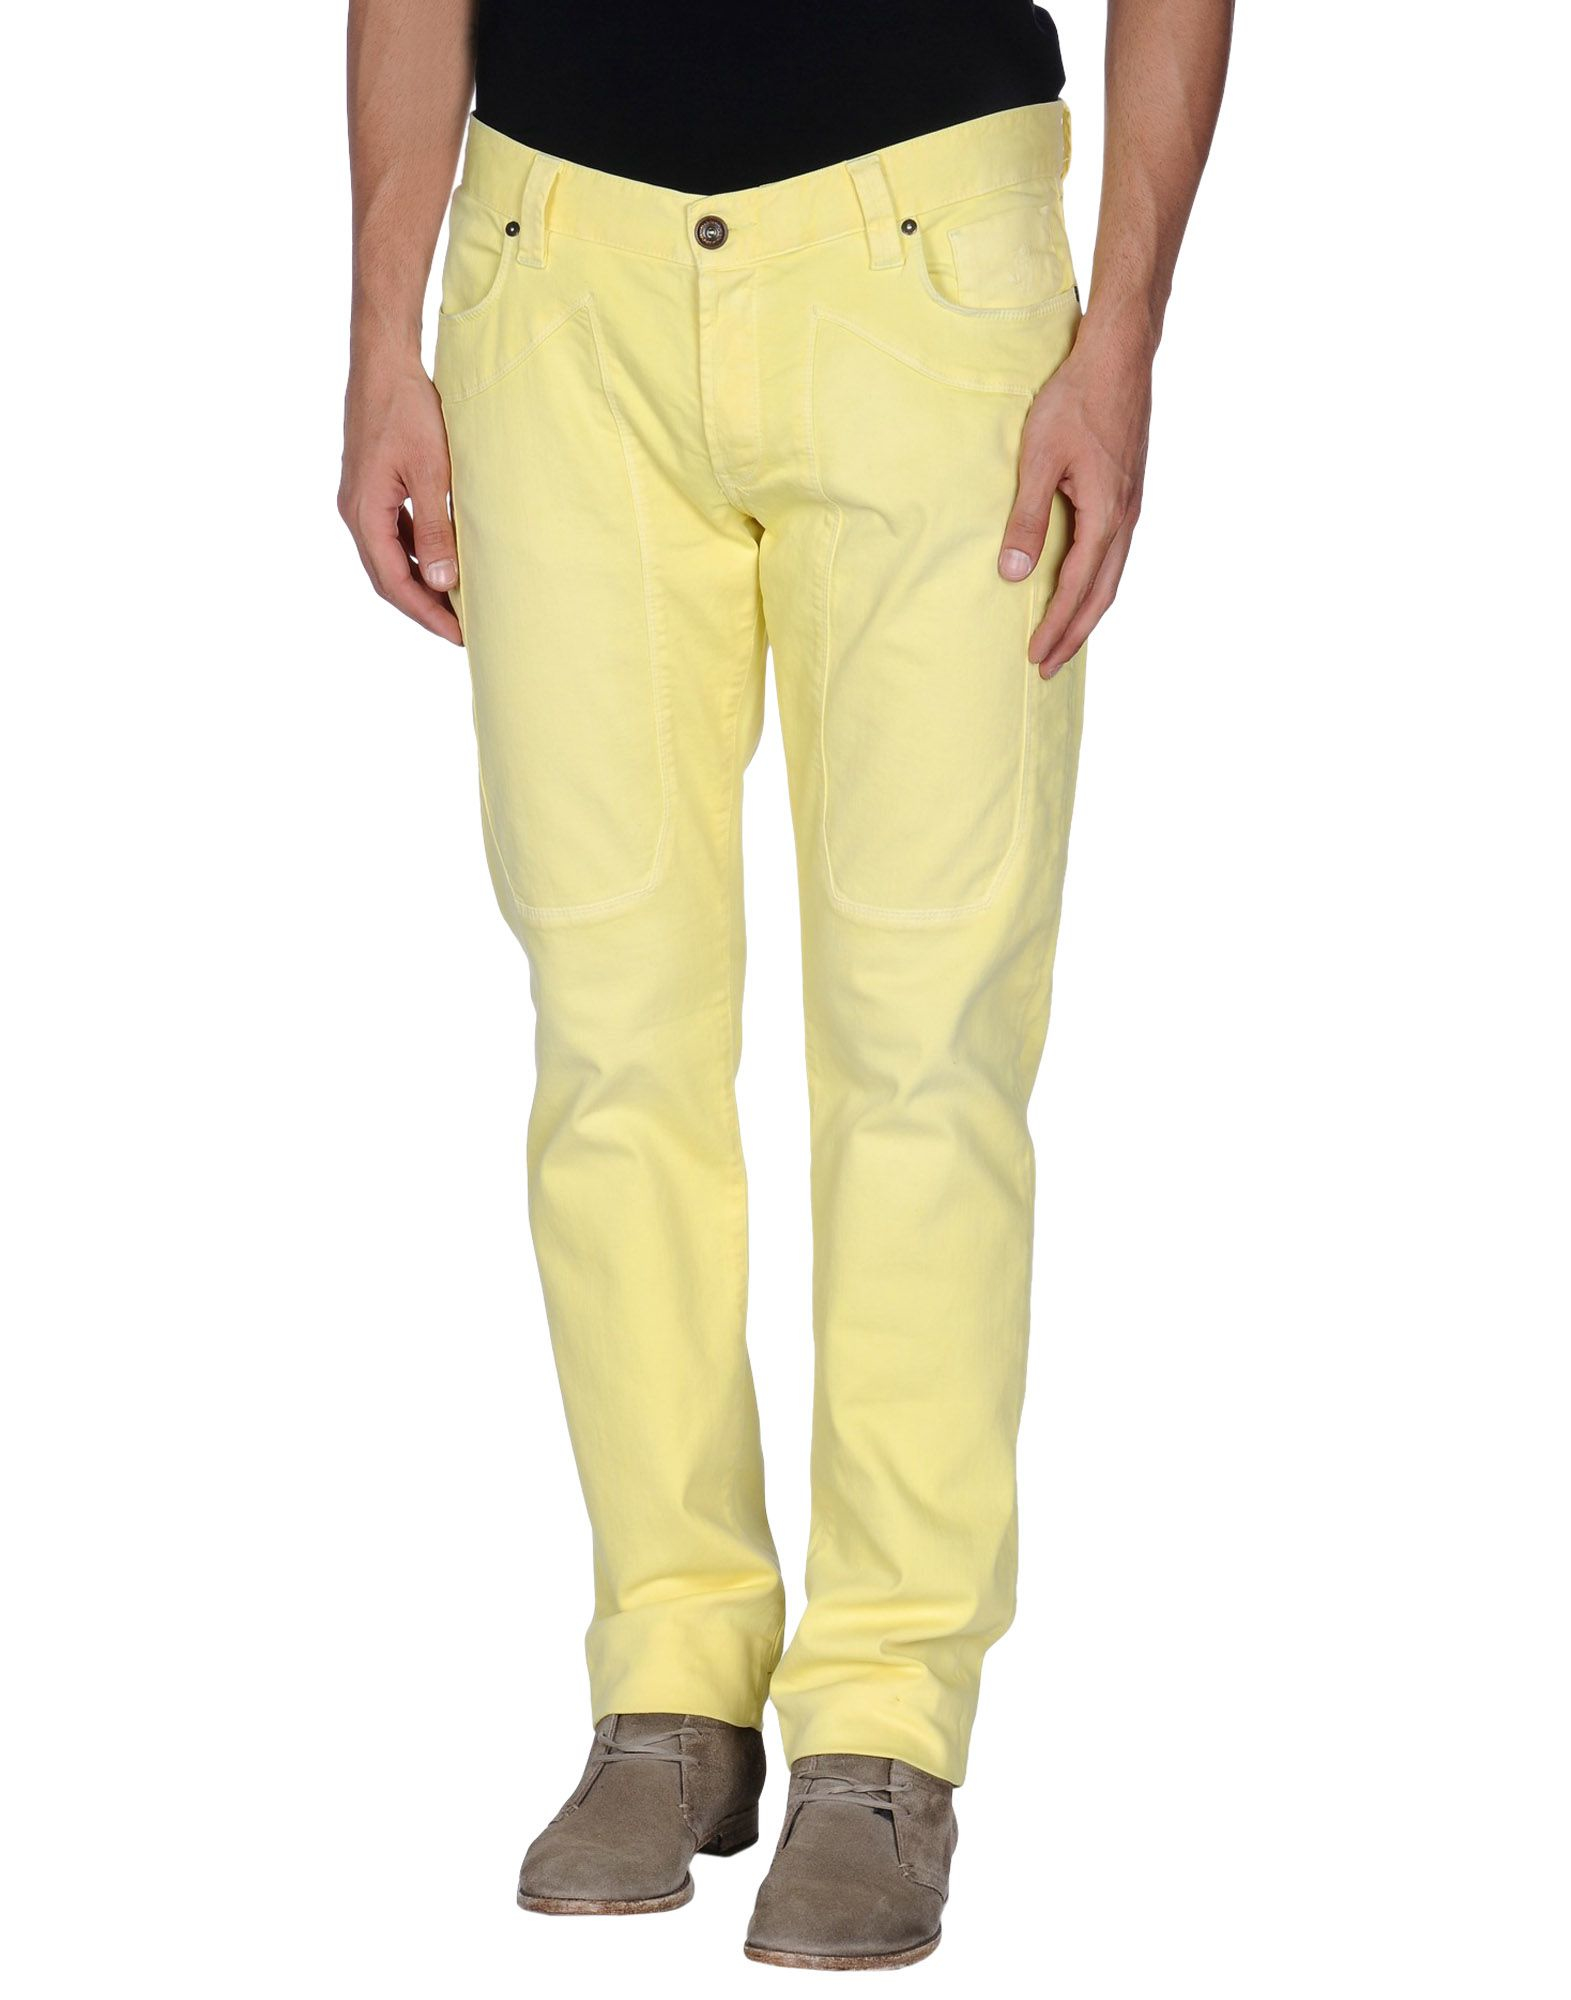 Shop eBay for great deals on Yellow Pants for Men. You'll find new or used products in Yellow Pants for Men on eBay. Free shipping on selected items.